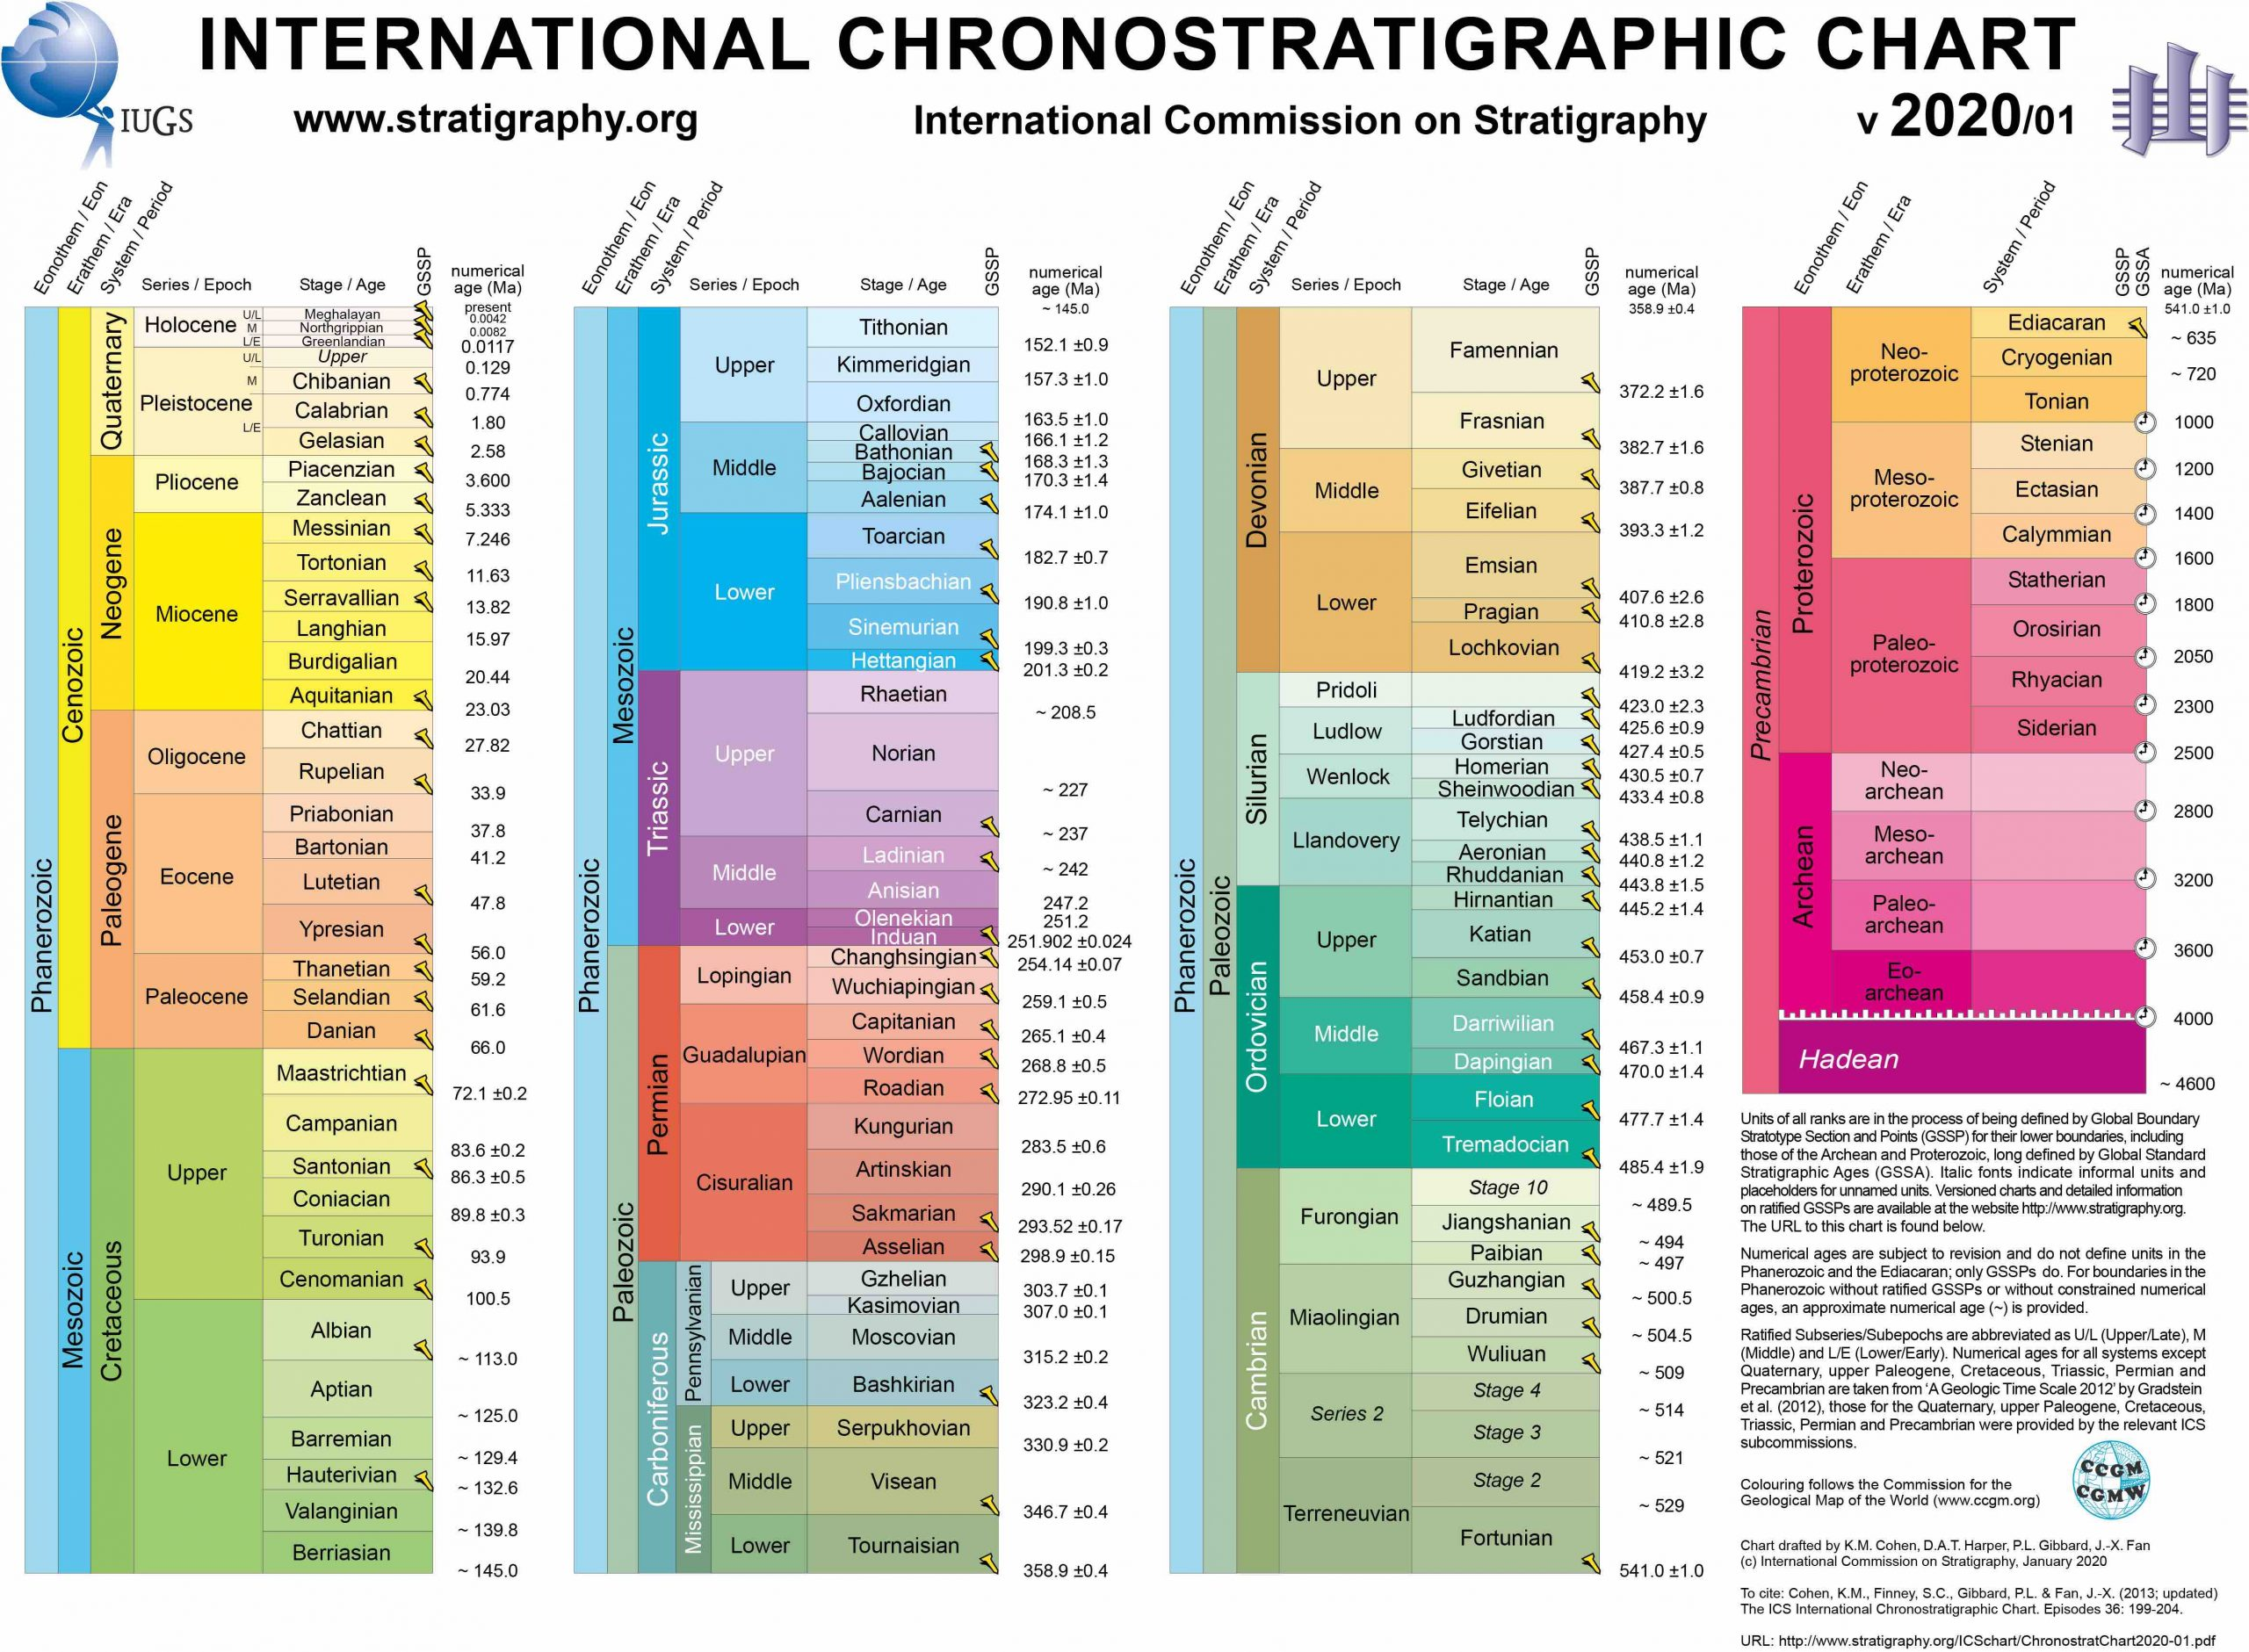 The geologic timescale is broken up into many different sections and subsections. Each has a different name and an age.